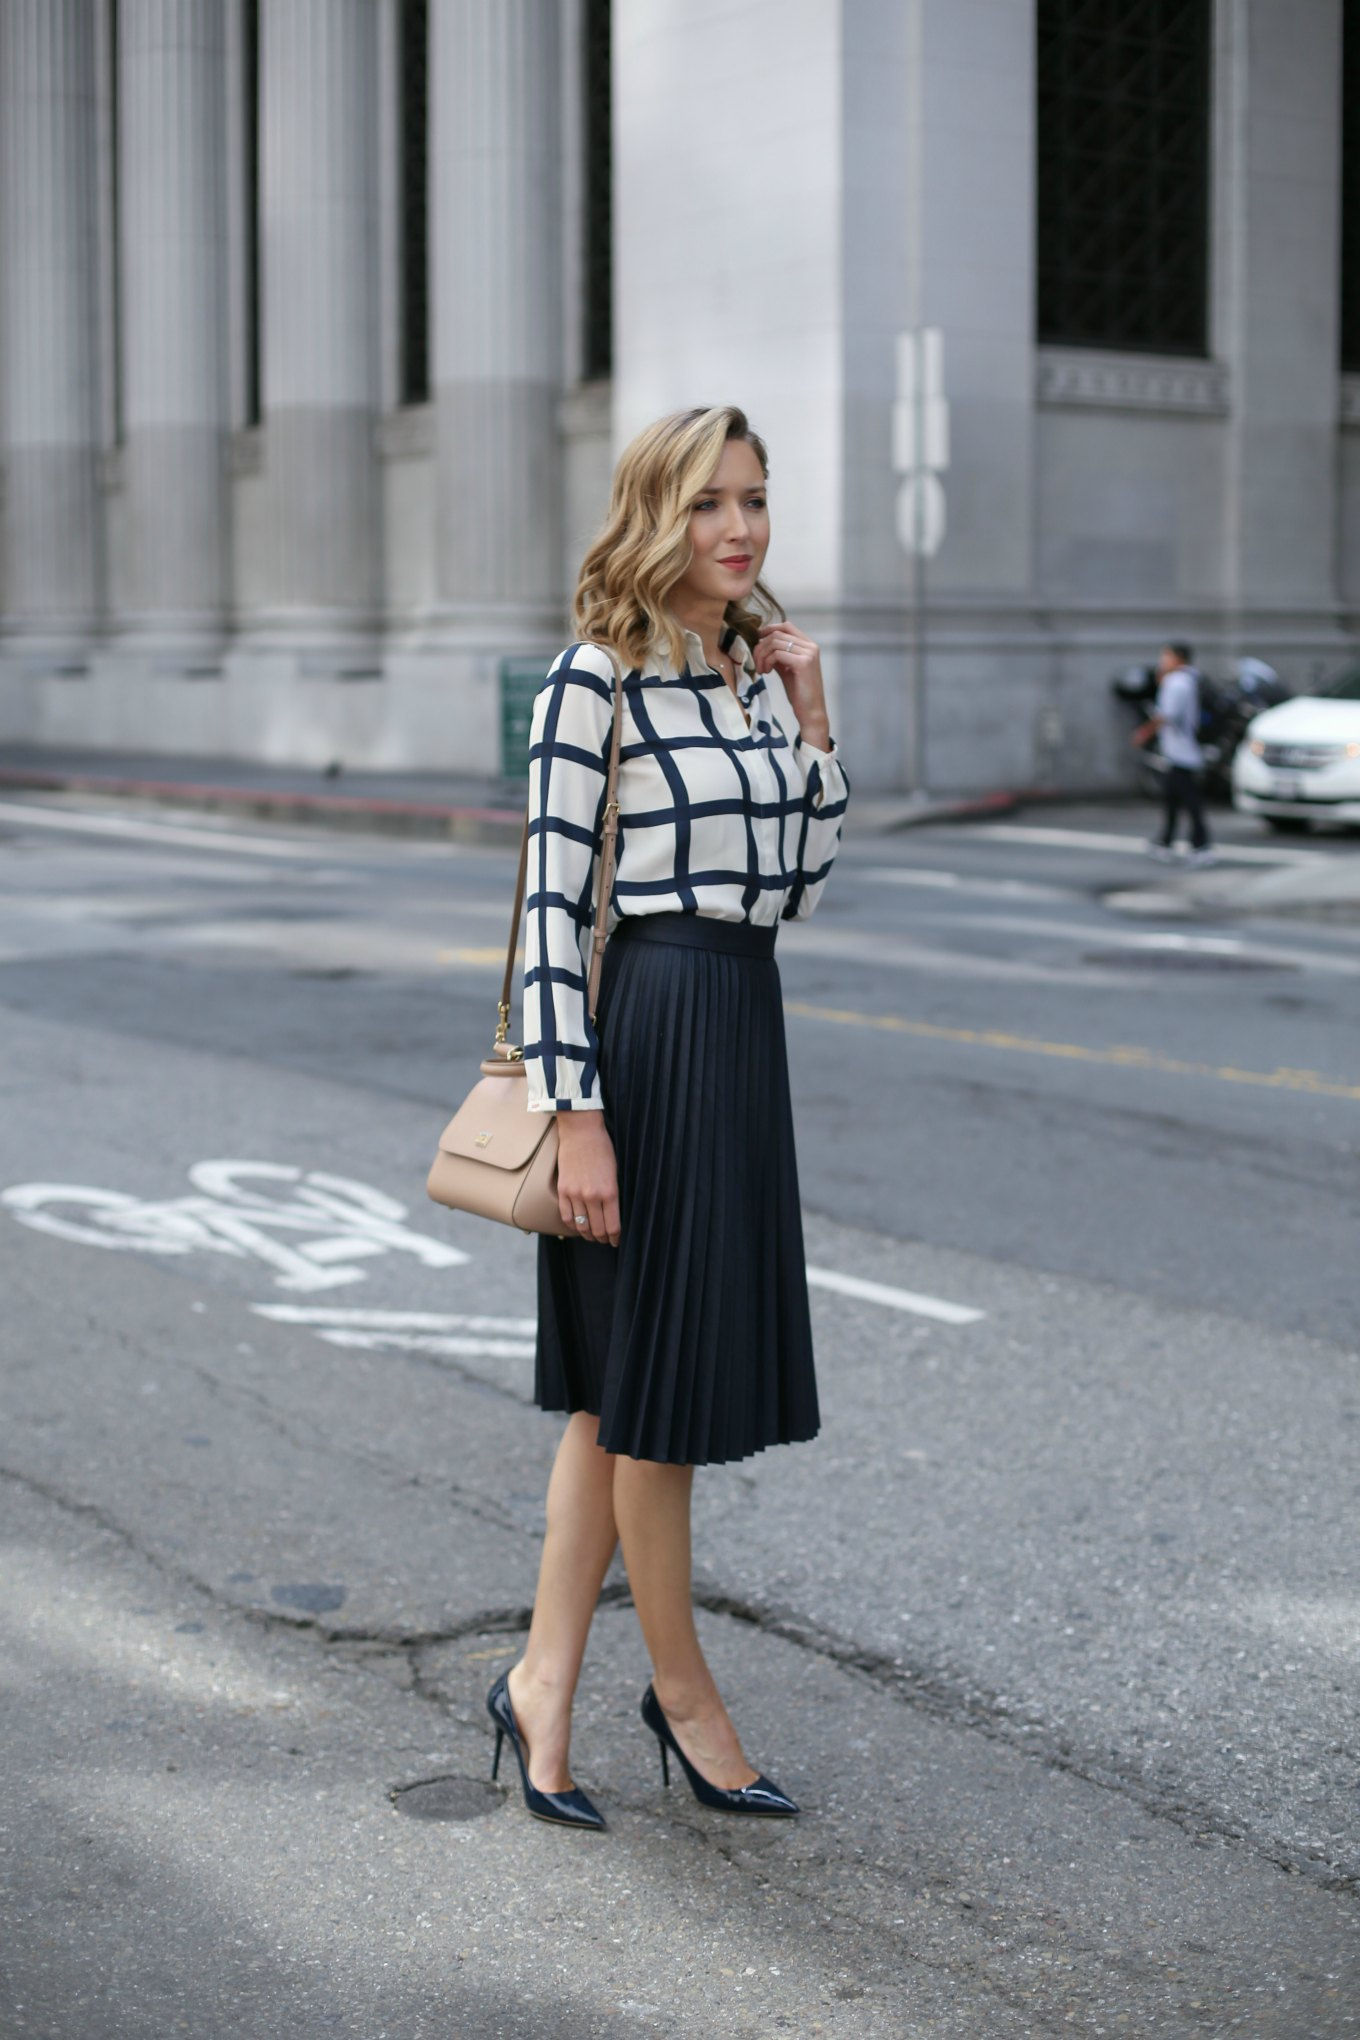 discover outfits that make you look right at the summer job midi skirt for the summer job interview